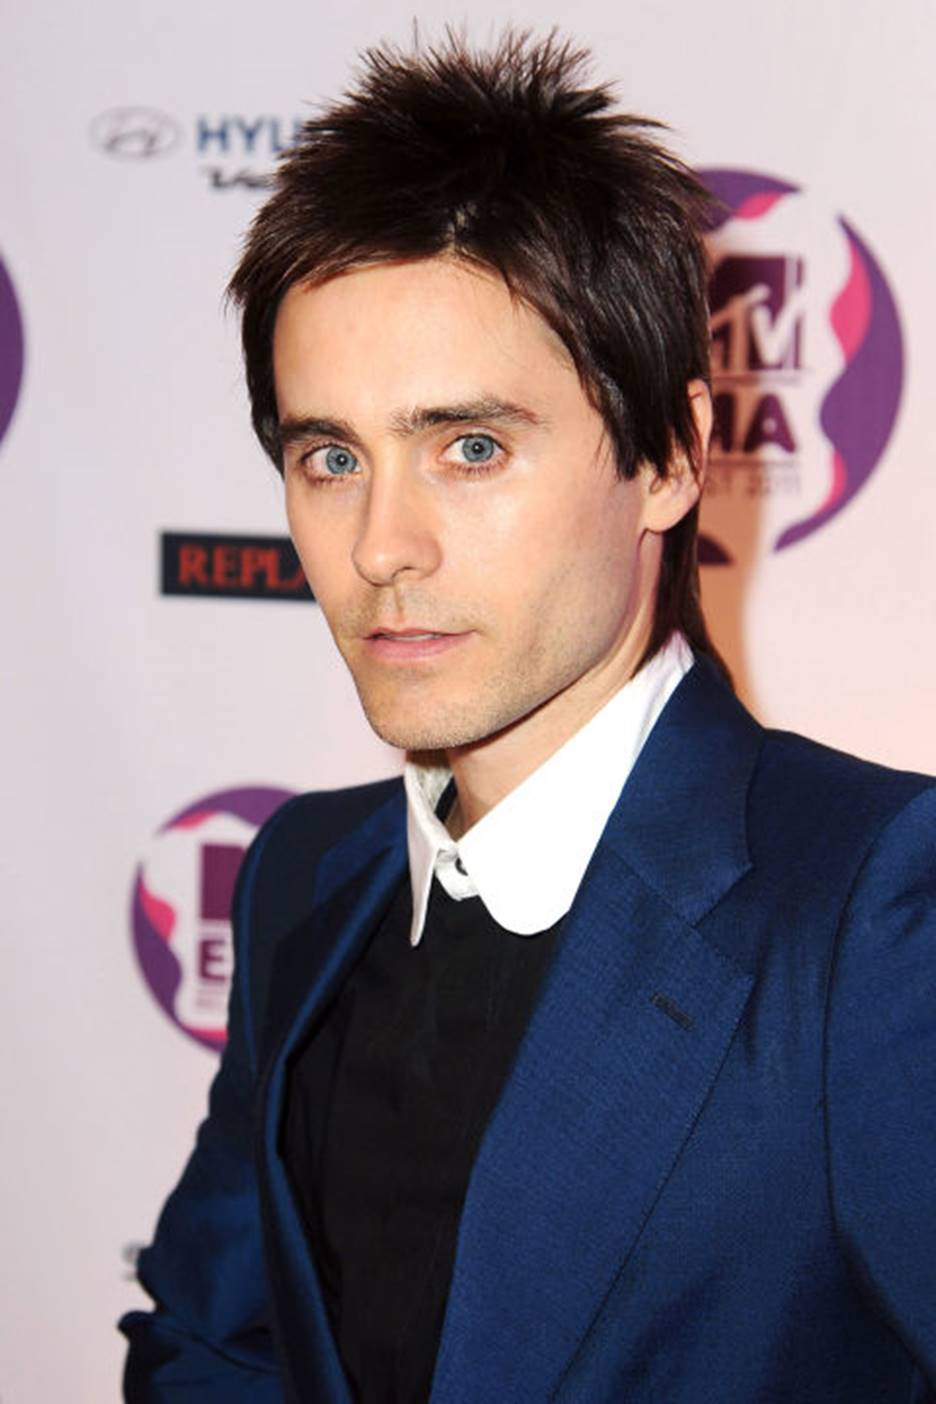 Jared Leto's Hair